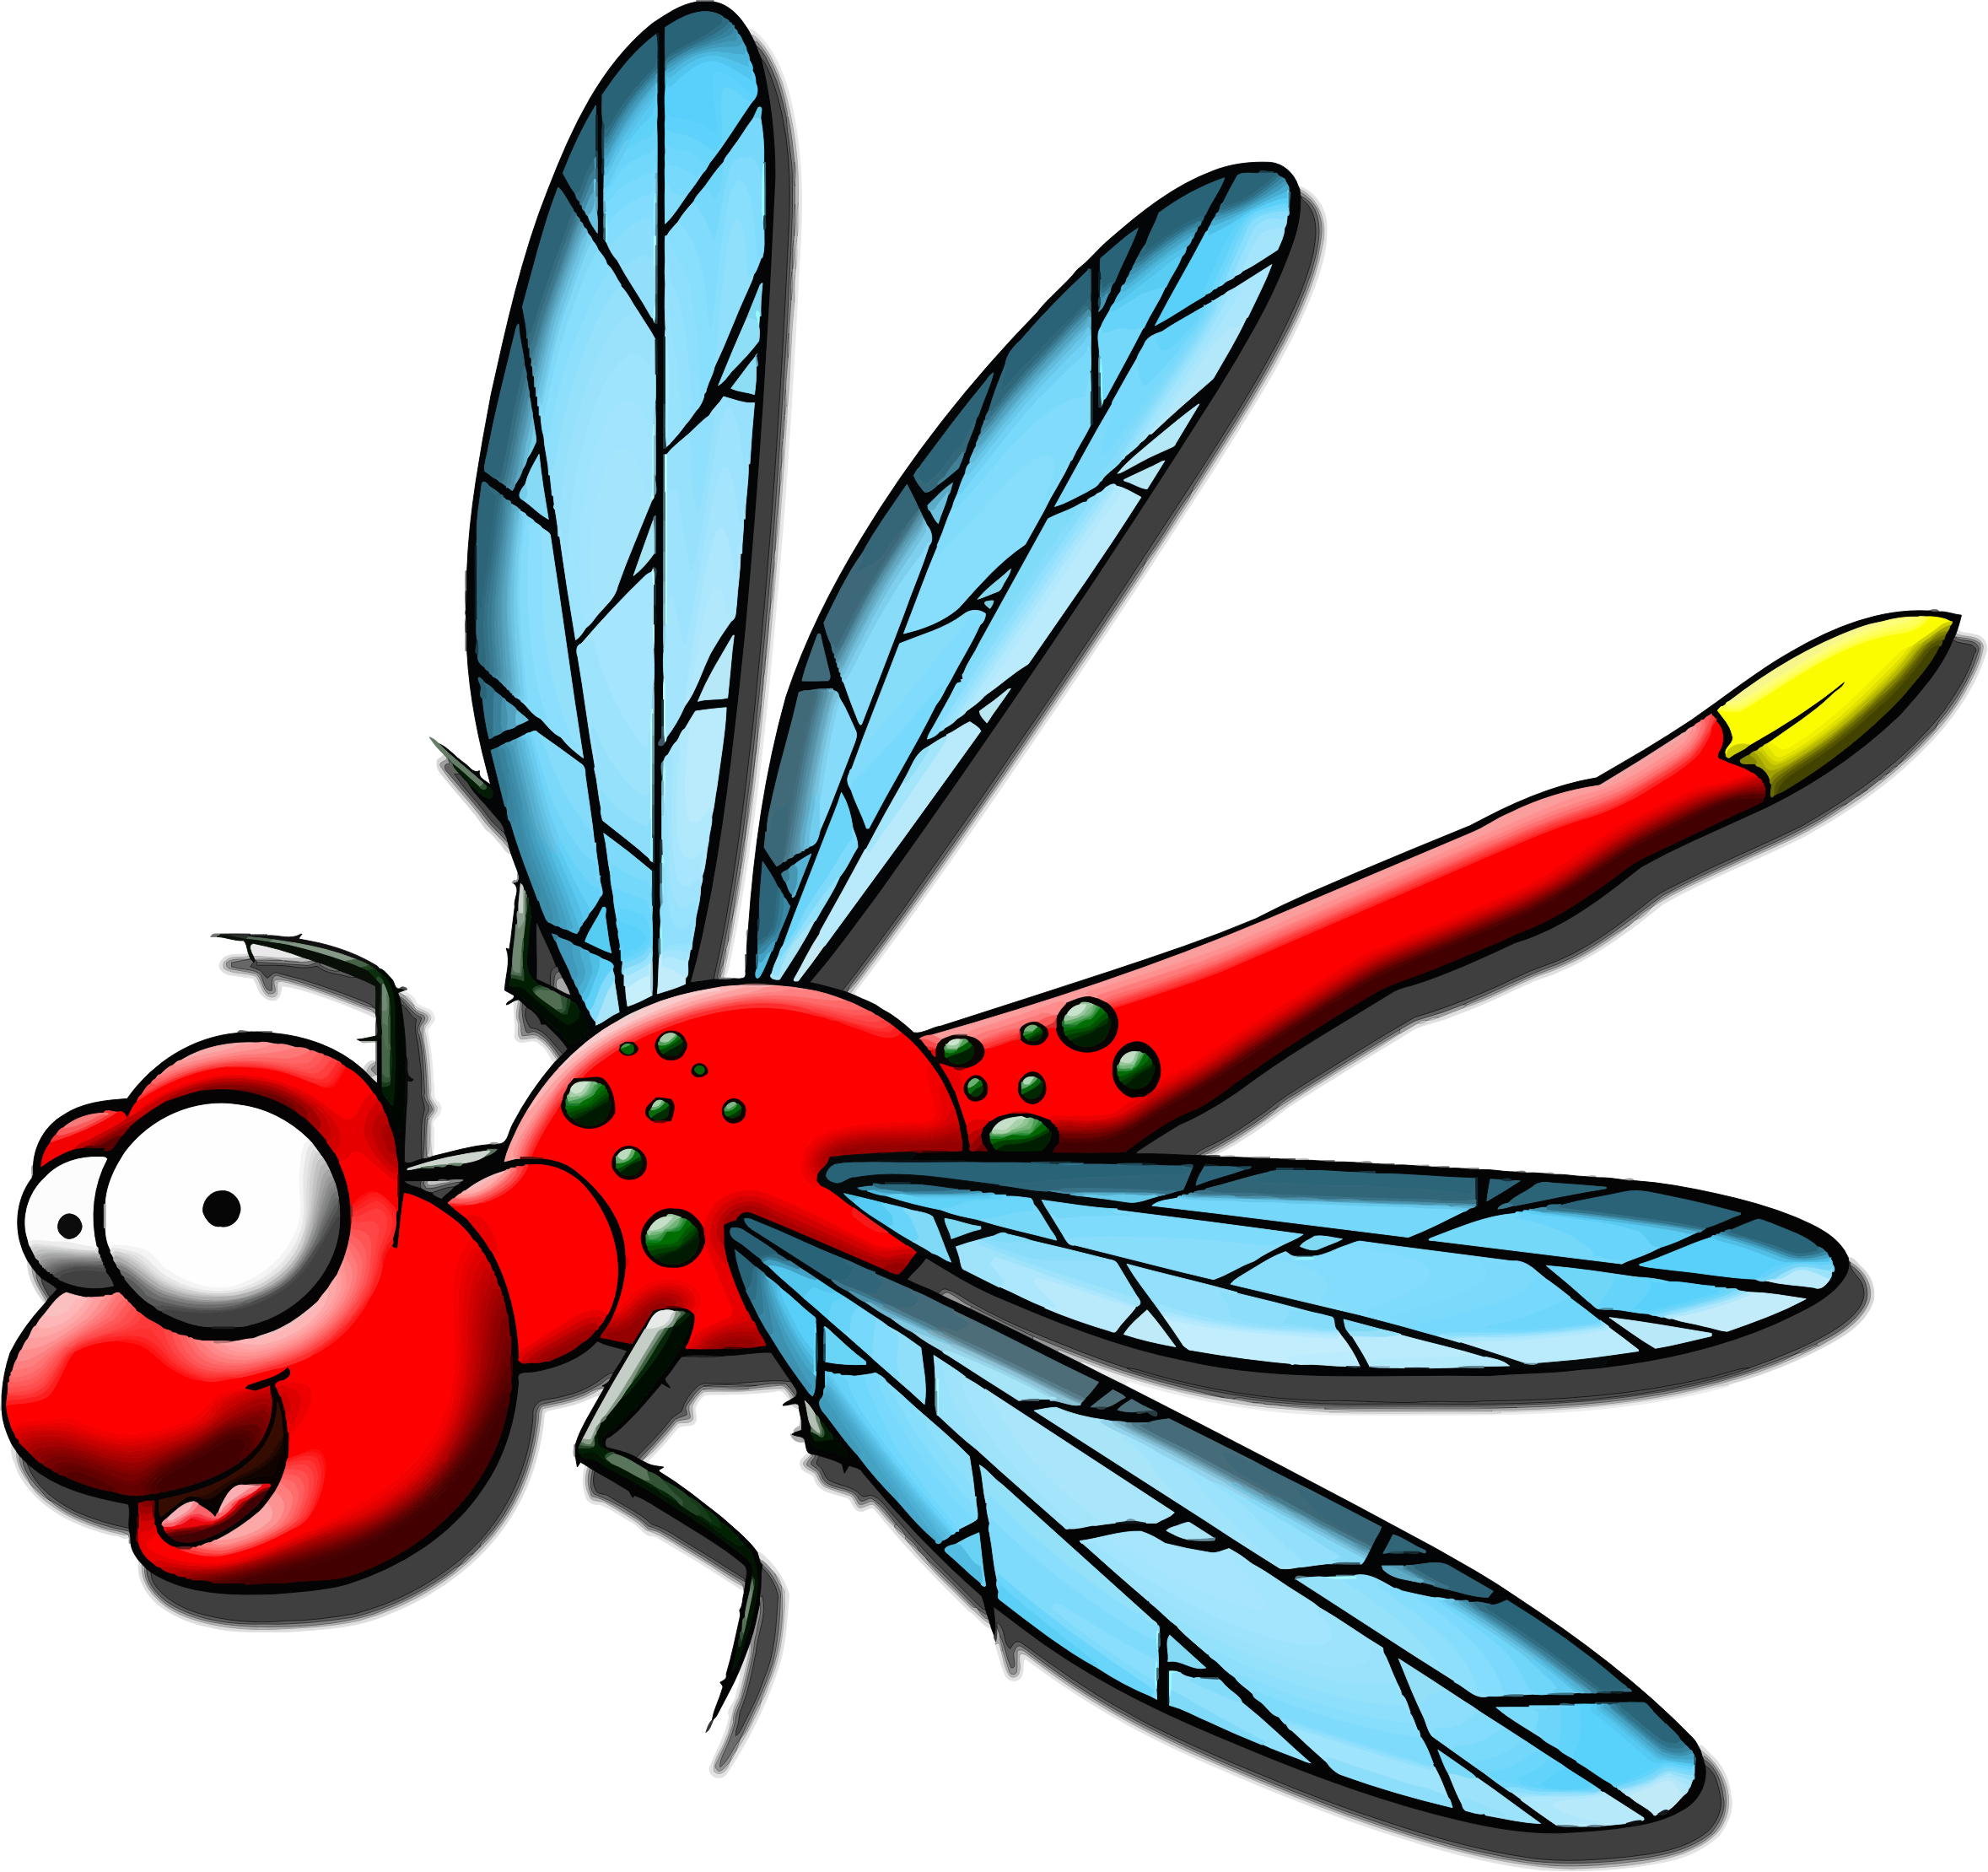 Dragonfly clipart whimsical. Drawings tattoos mgd mb